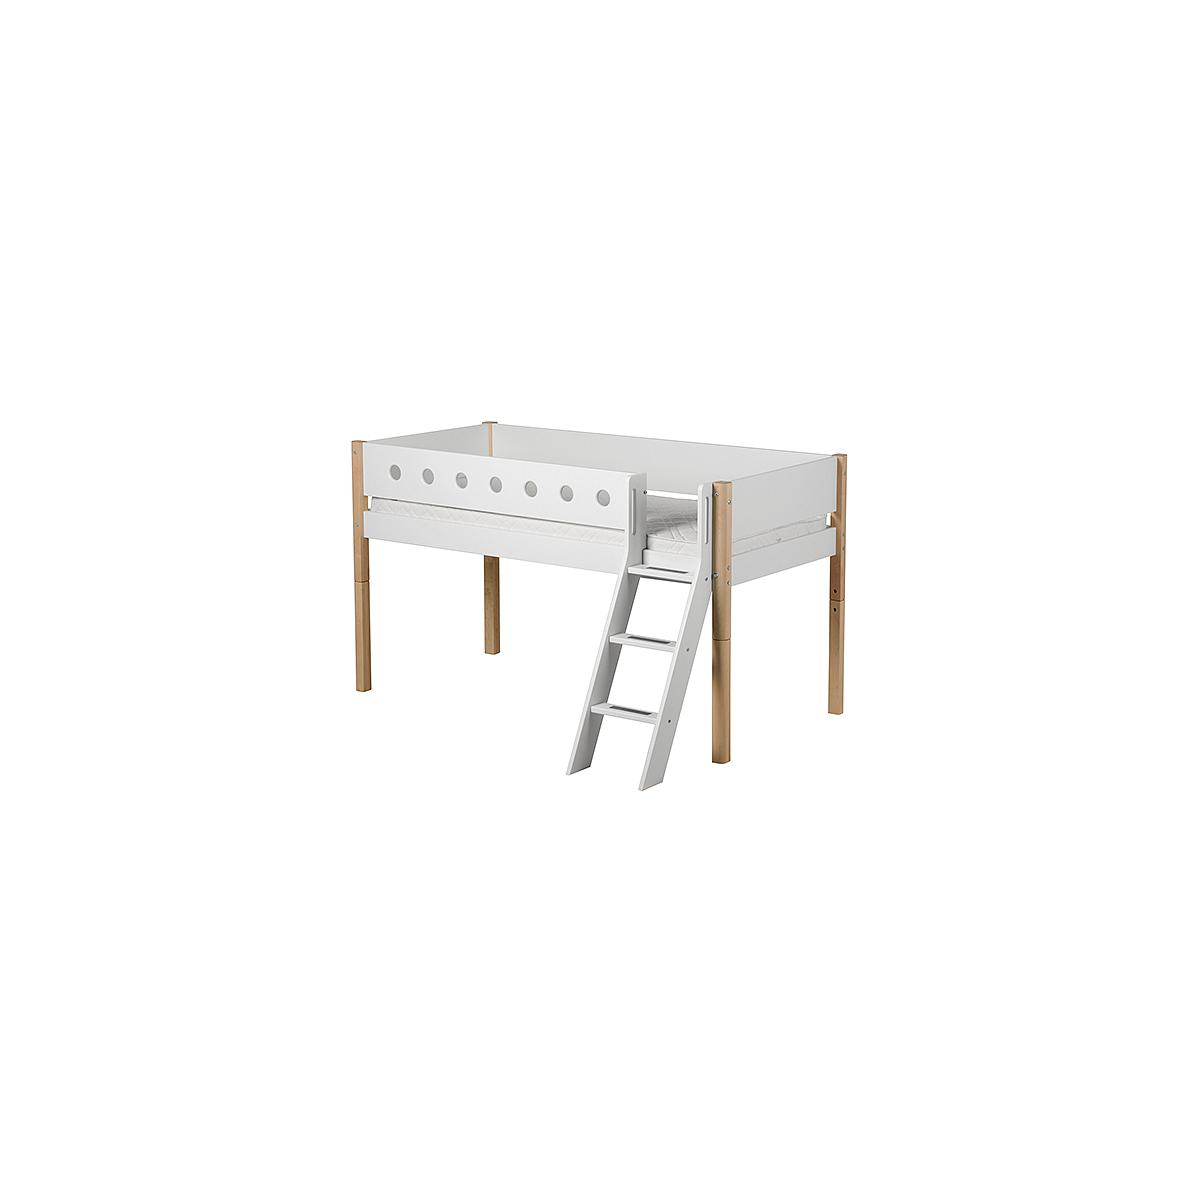 Cama media alta 90x200 WHITE Flexa escalera inclinada barrera blanca patas abedul